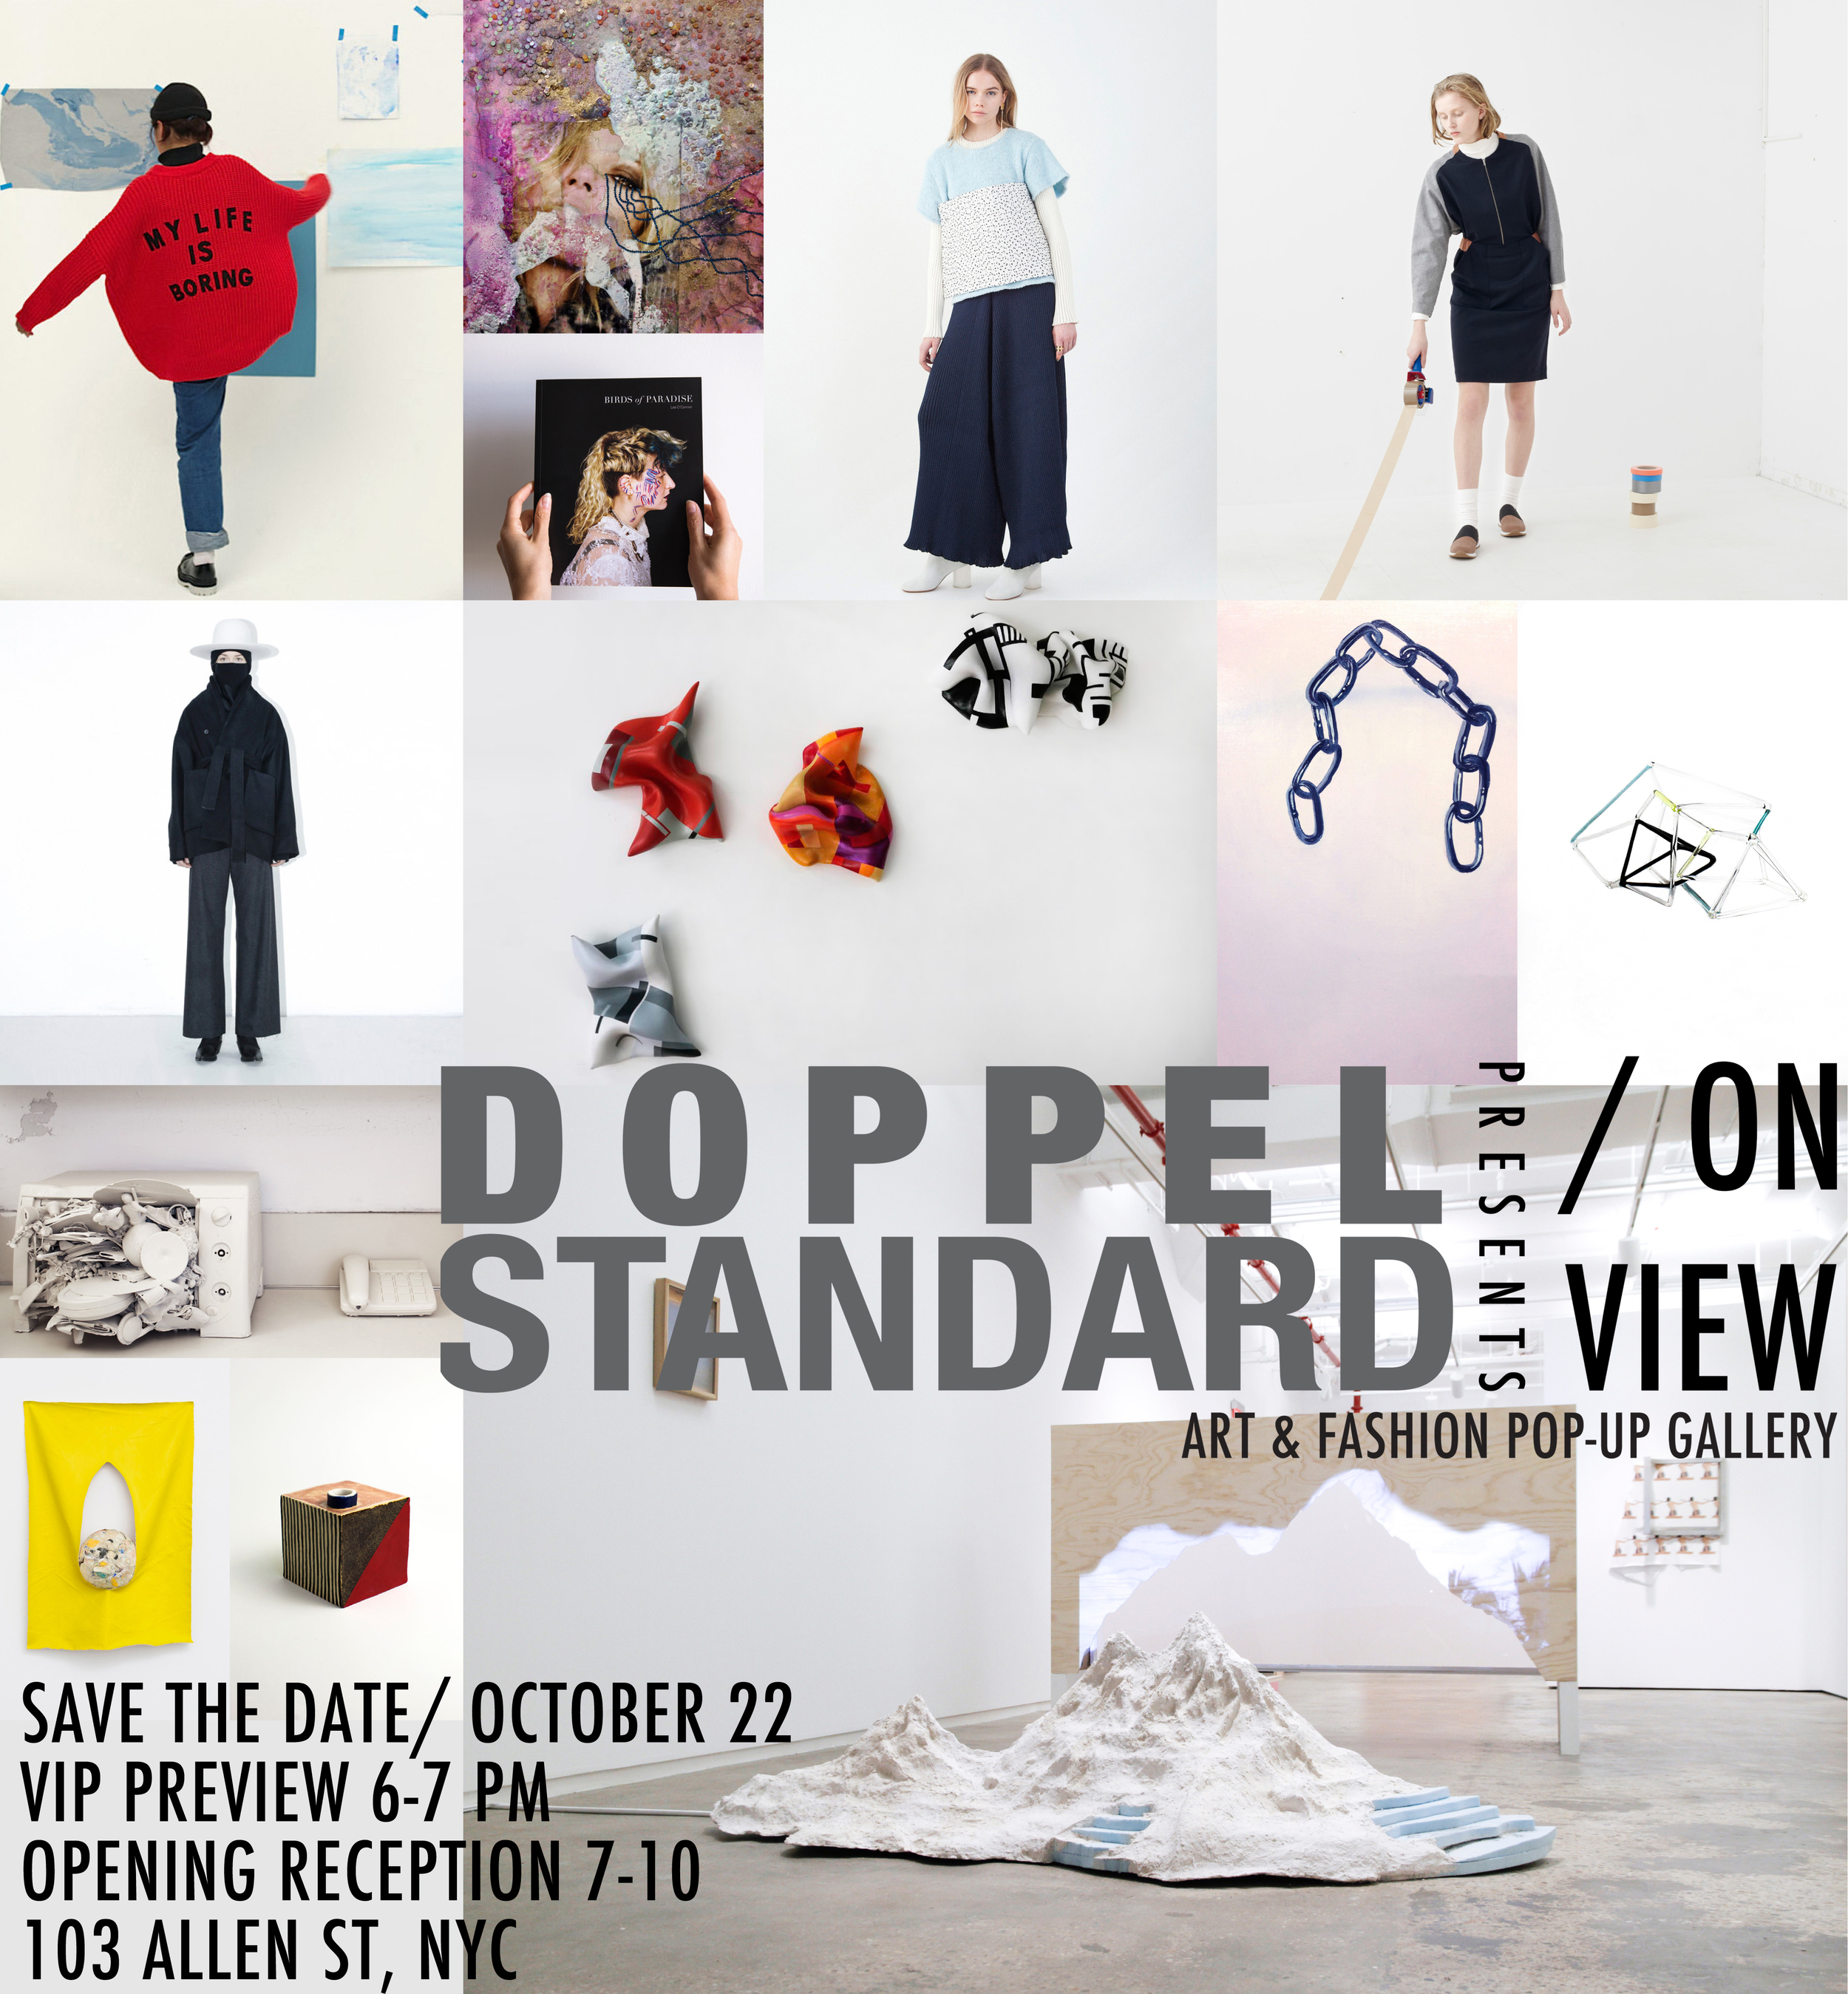 """DOPPELSTANDARD: ON VIEW   OCTOBER 22- 25 103 Allen Street, New York, NY  VIP OPENING RECEPTION THURSDAY, OCTOBER 22, 6 PM PRESS PREVIEW 12-1 PM   Doppelstandard is pleased to present DOPPELSTANDARD: ON VIEW an interdisciplinary art and fashion exhibition curated by Andy Chow. The four-day event located at 103 Allen Street, New York, will feature the works of Becky Brown, Jane D'Arensbourg, Reiko Hamano, Edyta Lewicka, Siobhan Liddell, Ariel Mitchell, Alex Nuñez, Lee O' Connor, Marela Zacarias, and will showcase the newest fashion collections from the likes of Won Hundred, Assembly New York, and Reality Studio. The exhibition kicks off with a VIP opening reception on Thursday, October 22nd from 6:00pm-7:00pm, and open to the public from 7:00pm-9:00pm. The opening will have an open cocktail bar, music provided by DJ LEAN AUTOMATIC and works and apparel for sale.  Doppelstandard is an independent lifestyle women's boutique based in New York that curates fun and cutting-edge multinational designer labels with vintage pieces from Japan. In 2011, Doppelstandard began as Standard Vintage, an online Etsy store specializing in Japanese vintage clothing. Creator Andy Chow developed a fashion concept that would merge the Standard Vintage idea with contemporary stylings, inspired by the street looks from New York and Tokyo. He decided to leave his corporate architectural design job to pursue his vision of a brand that combines the best of both aesthetics. The name Doppelstandard encompasses this """"style paradox"""" that two seemingly opposed concepts, when joined together, can create a unique and elegant new street style.  Gallery hours will run from October 23- 24 12PM- 8PM, and October 25 11AM- 4PM. This event is produced by LUCAS BRANDING. Exhibition coordinated by Alex Nuñez.  To make an appointment for the press preview on Thursday, October 22nd from 12:00pm- 1:00pm, or to RSVP for the VIP opening reception from 6:00pm-7:00pm, please contact Mathew@lucasbranding.com.  Alex Nuñ"""